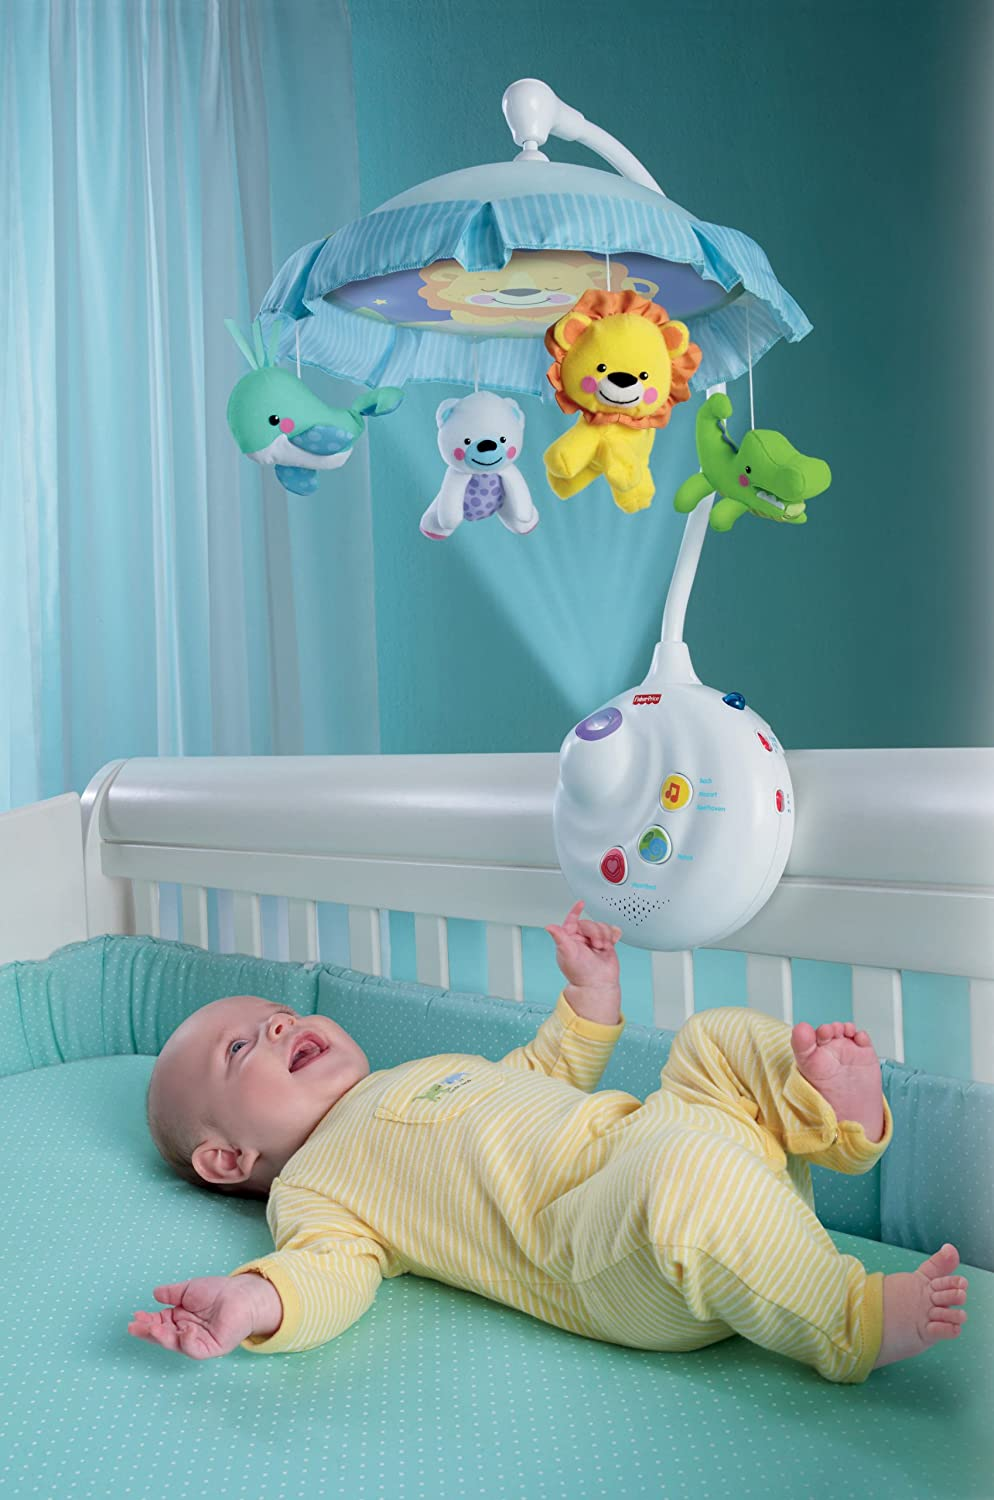 Fisher Price 2 in 1 Projection Mobile Precious Planet